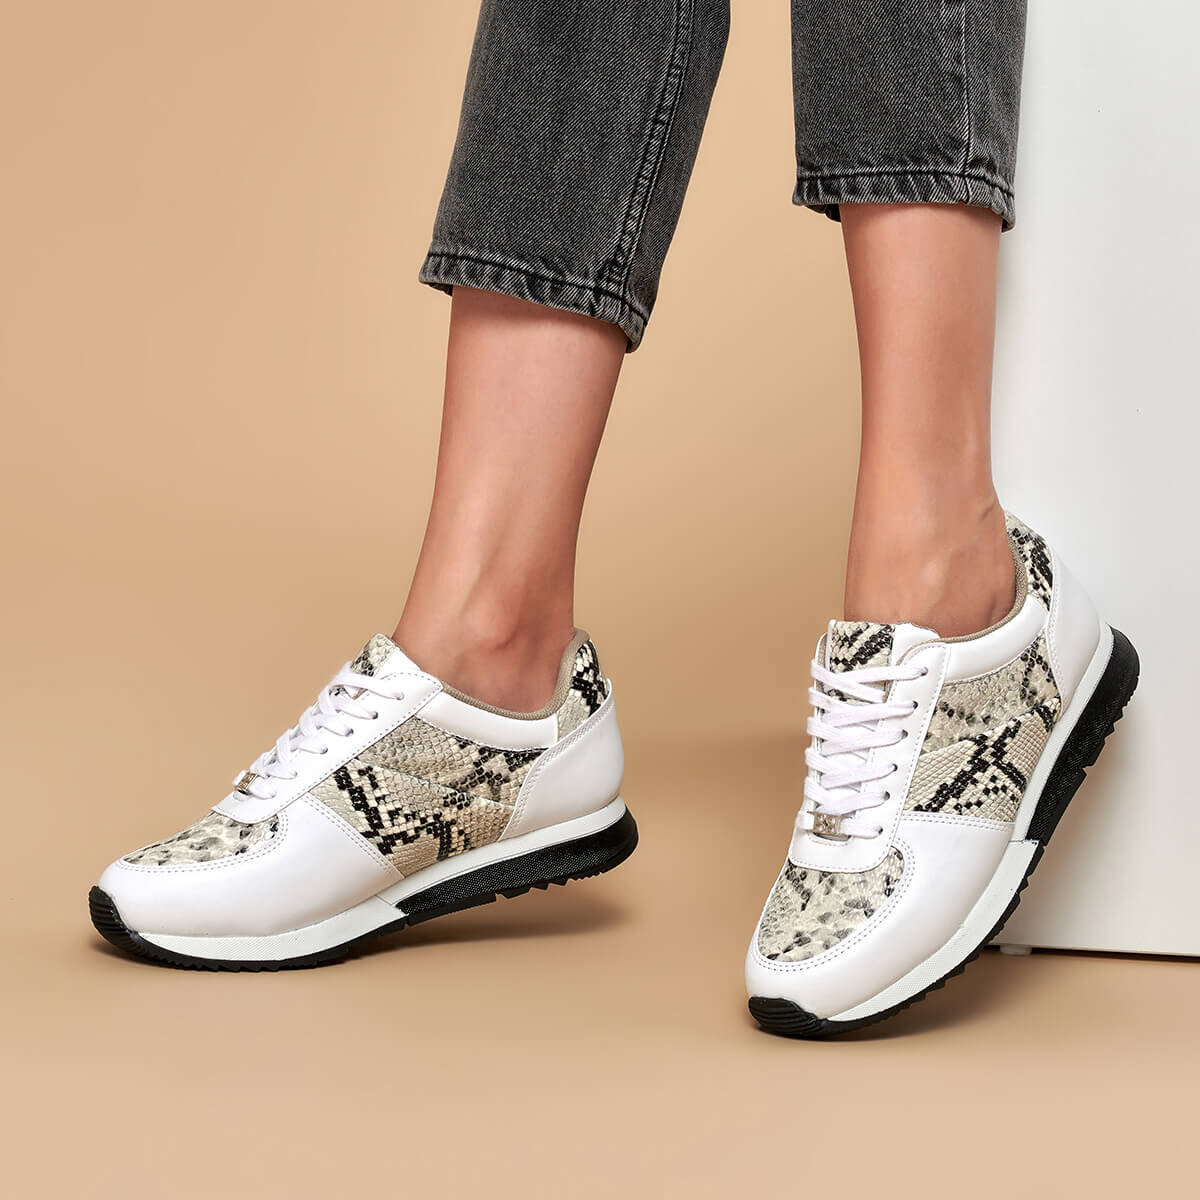 FLO White Snake Pattern Women's Sneaker Shoes Lace-up Casual Ladies Fashion Shoes BUTIGO S1116-5